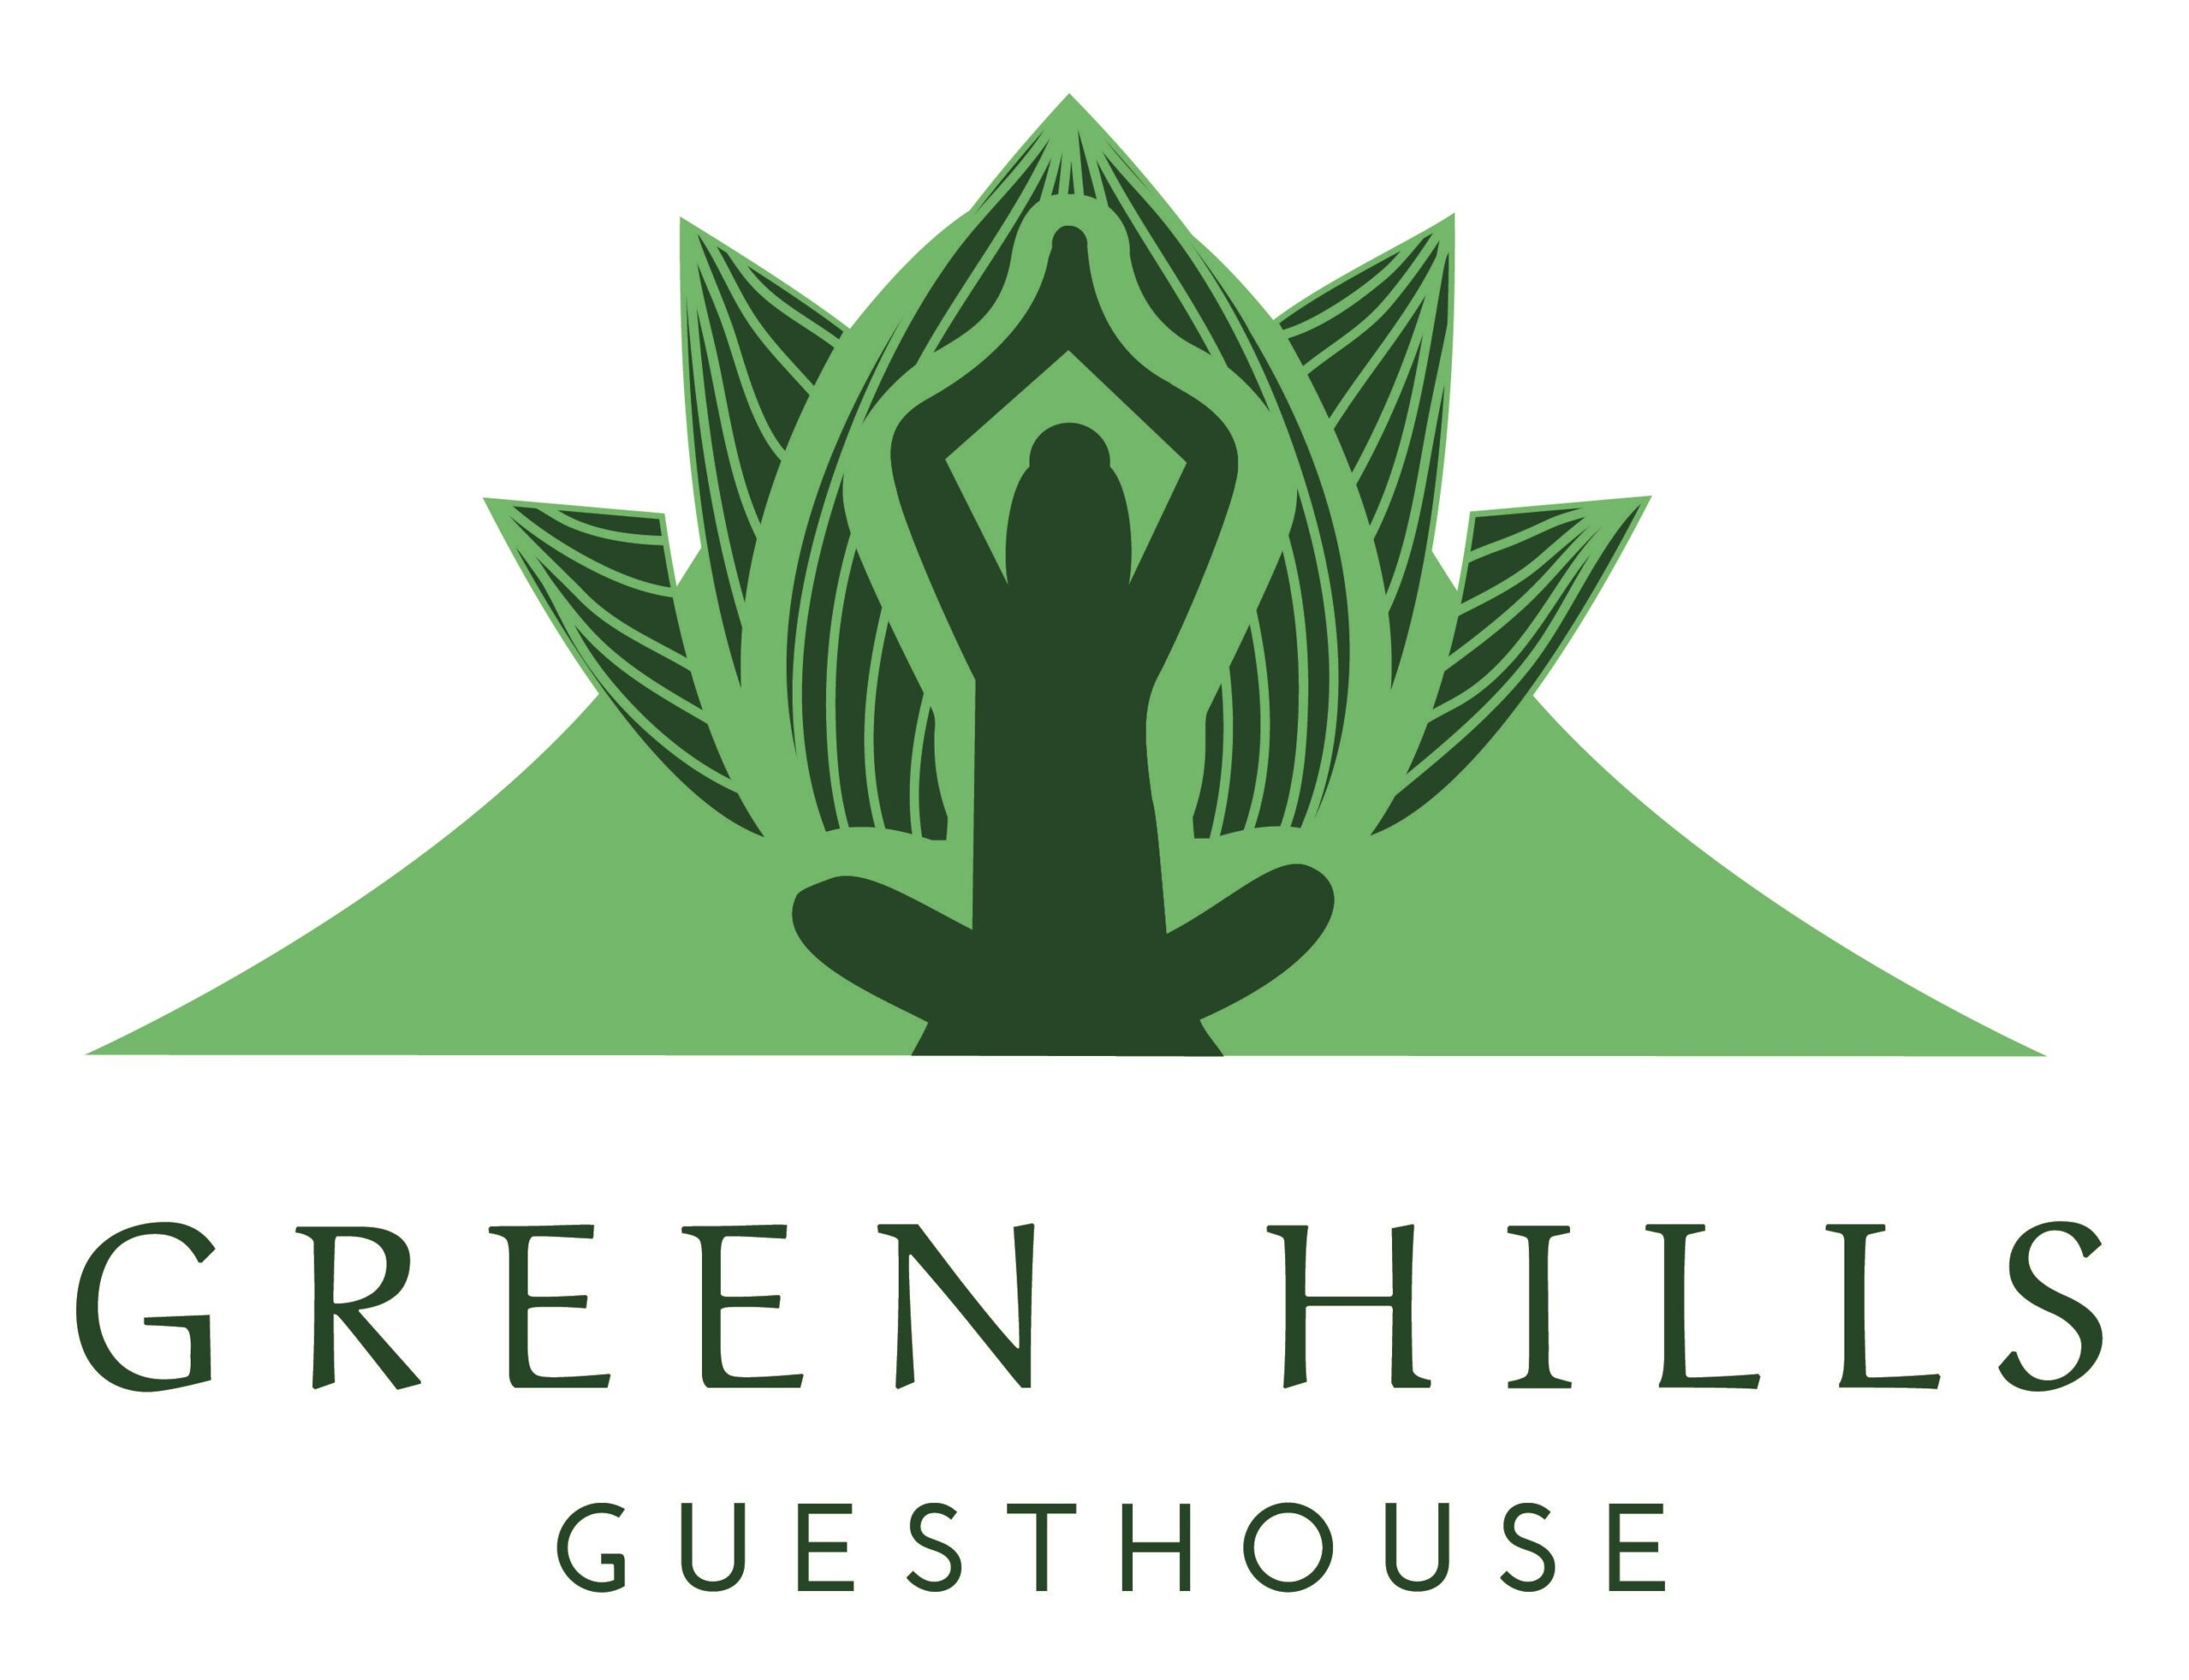 Greenhills Guesthouse